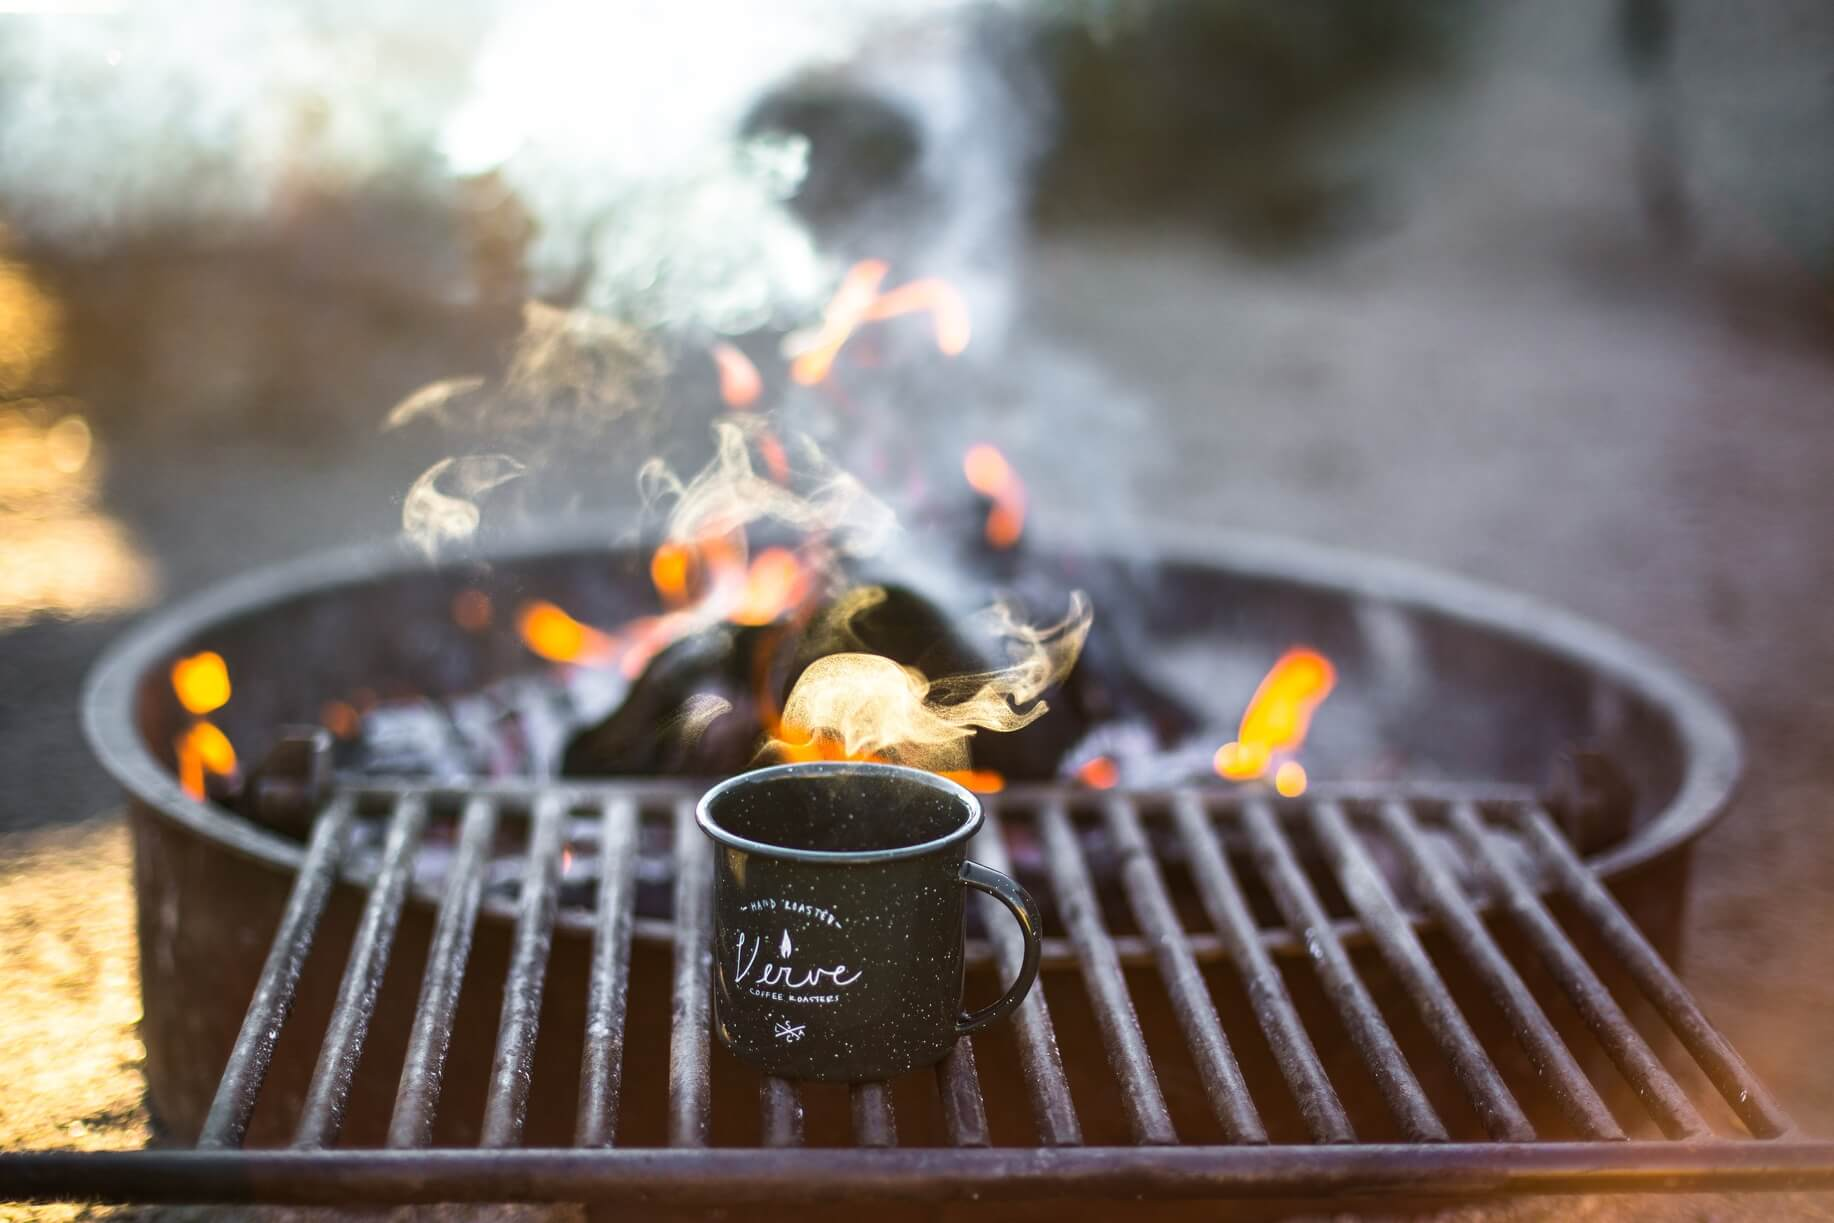 A campfire and a cup of coffee. What a way to start your day.